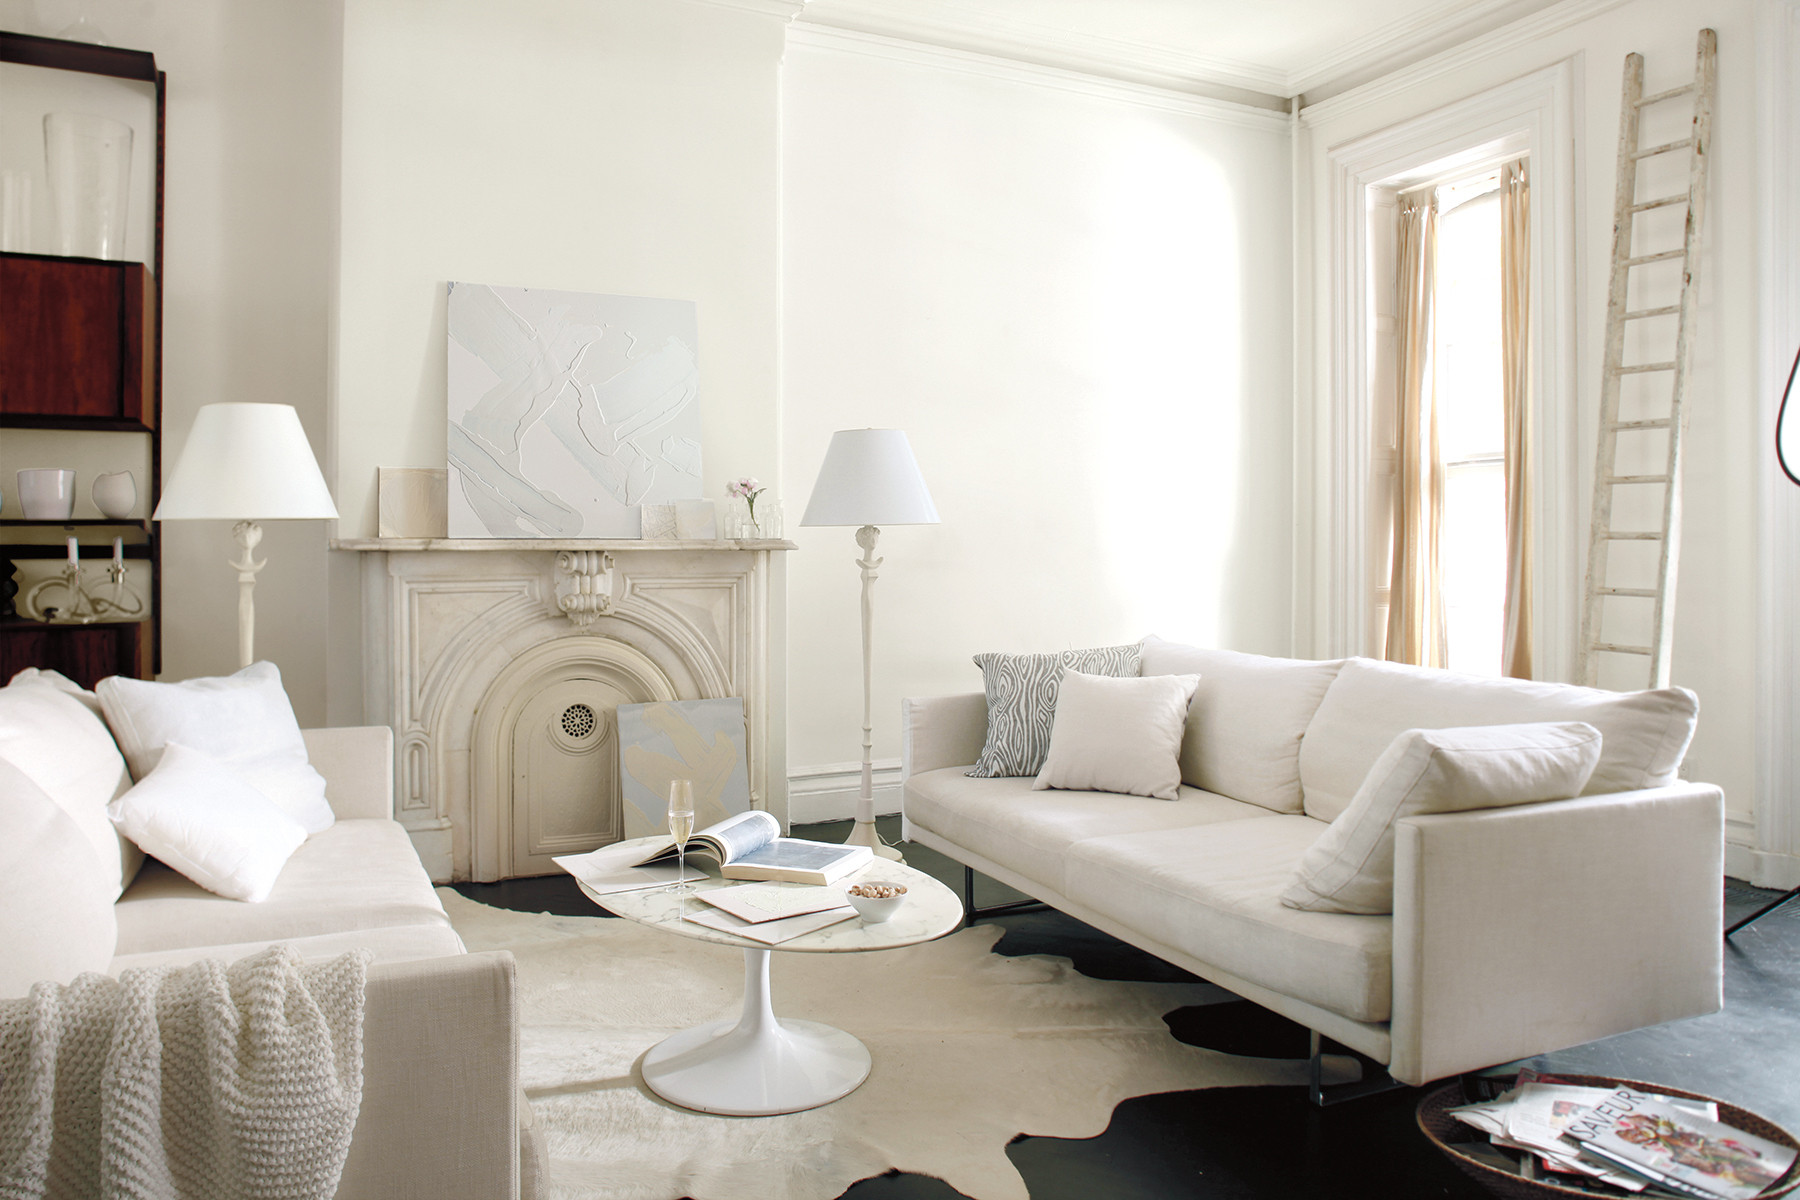 And the Benjamin Moore Color of the Year is...